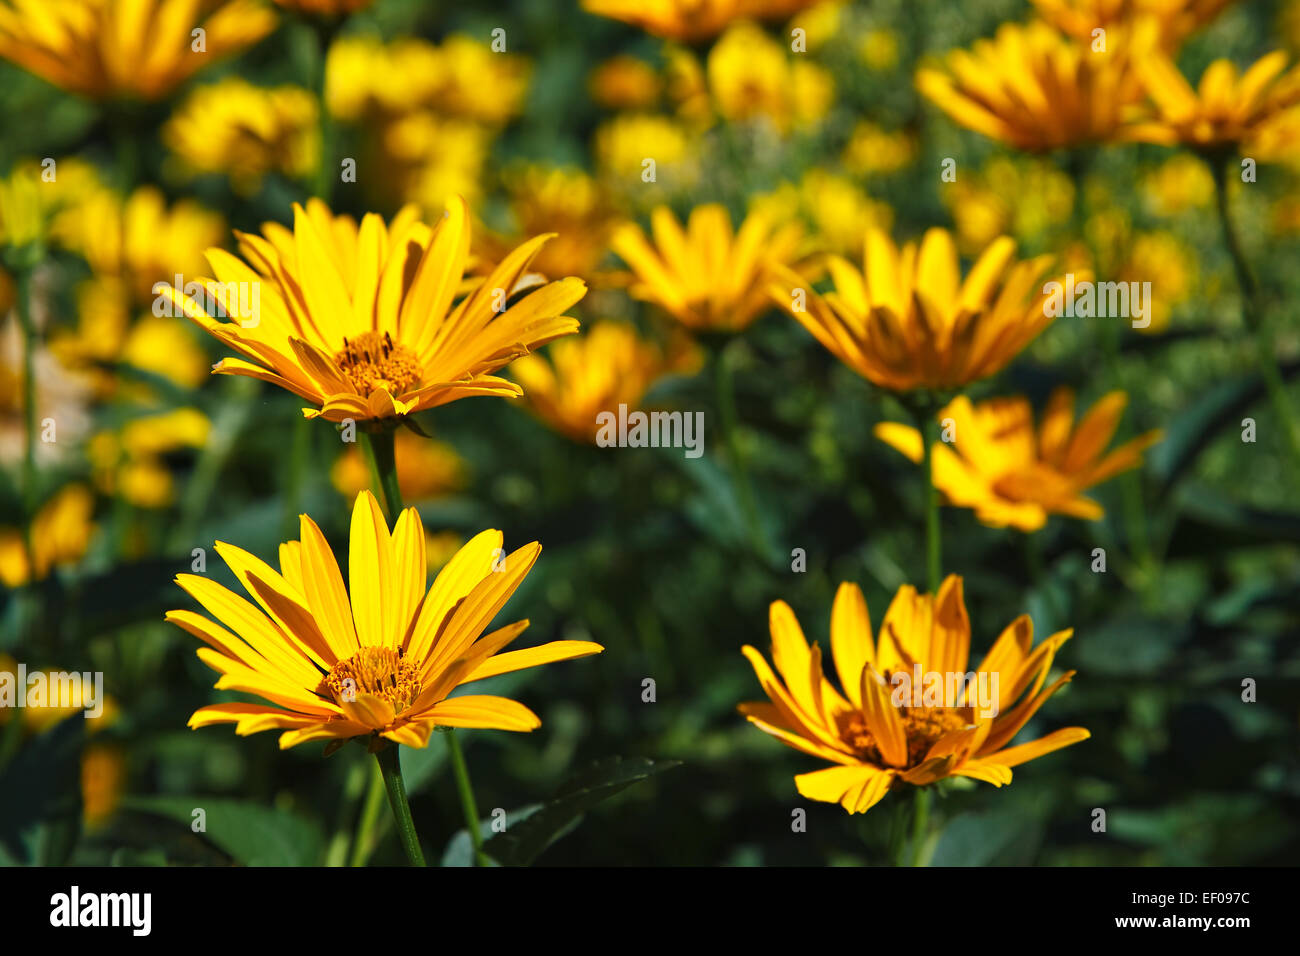 Flowers - Stock Image